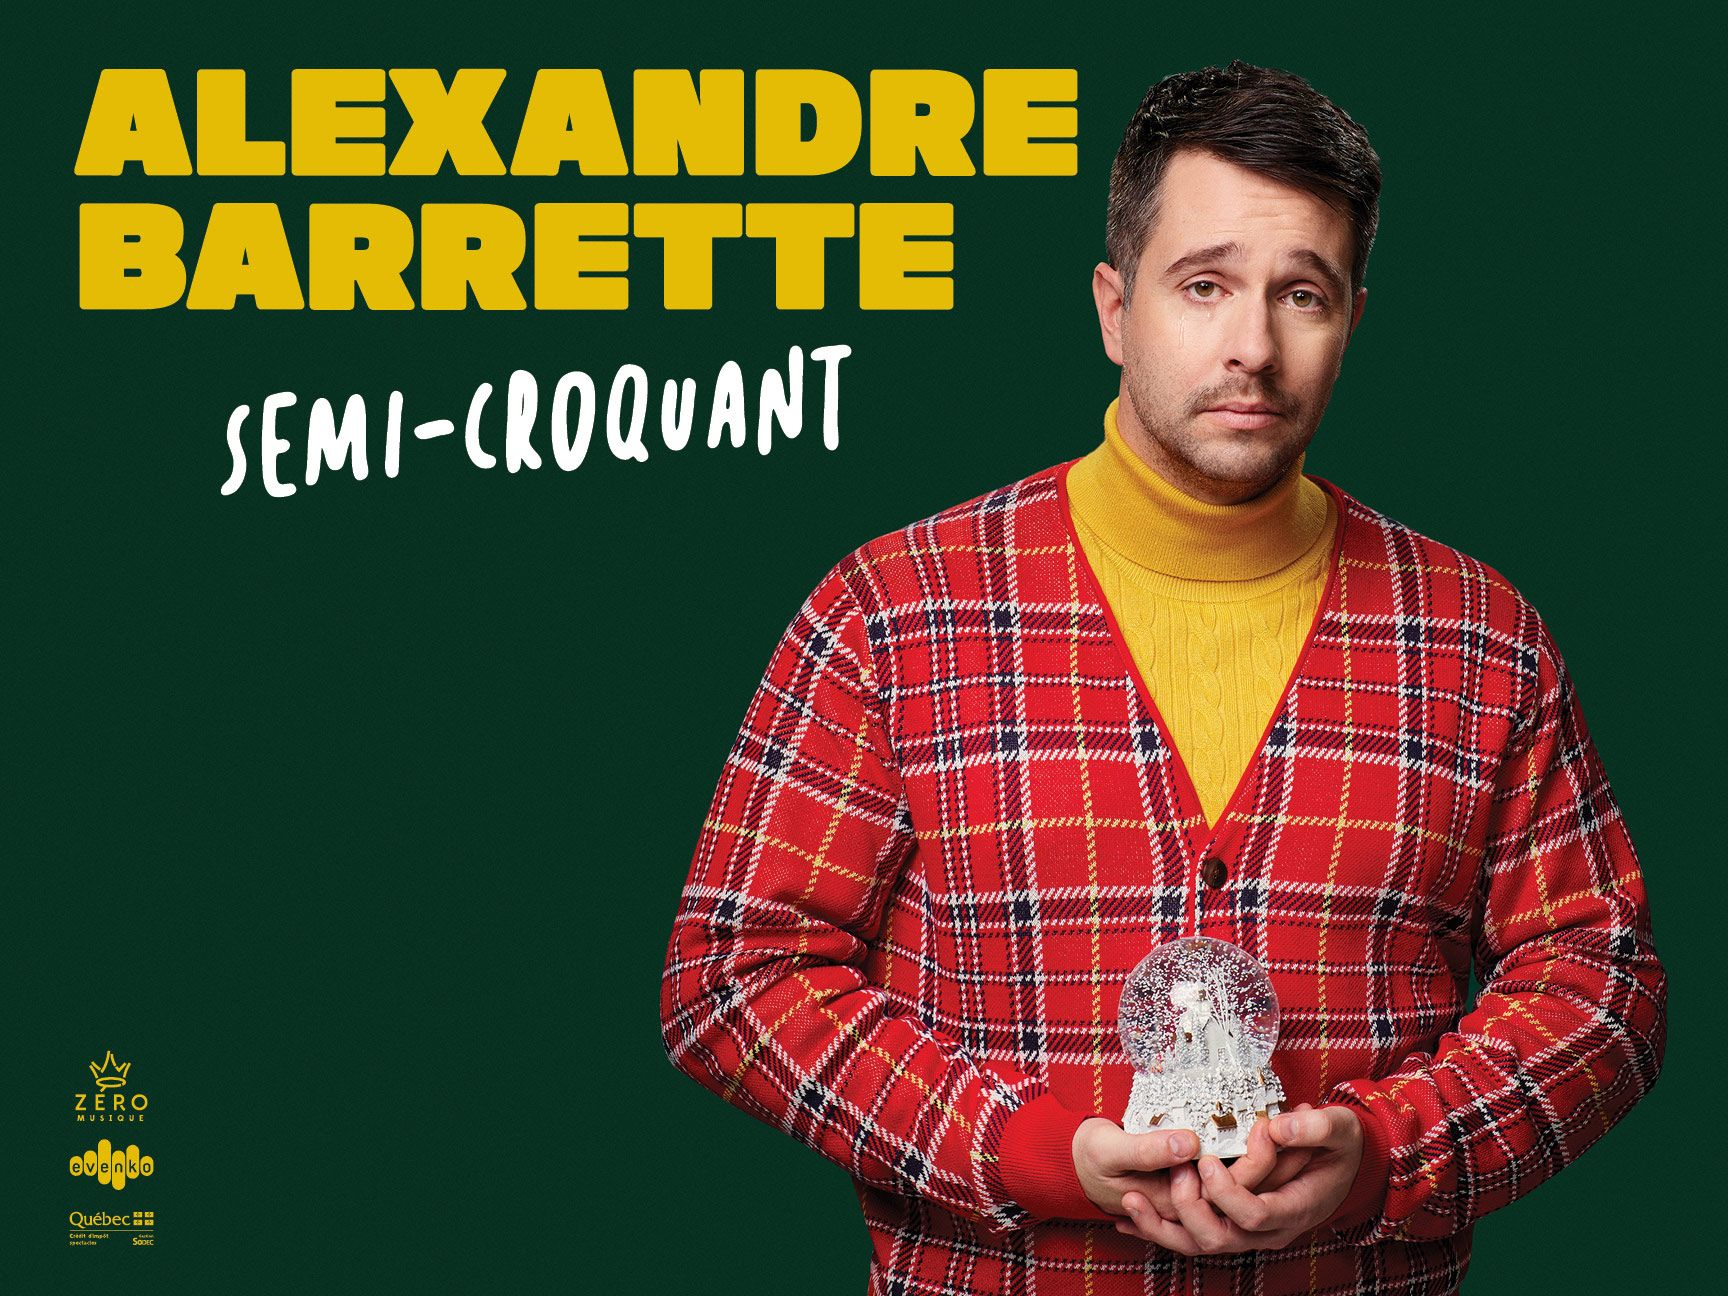 poster of humorist Alexandre Barrette dressed awkwardly in yellow sweater pleated cardigan snowglobe in hand for show semi-croquant by Jocelyn Michel